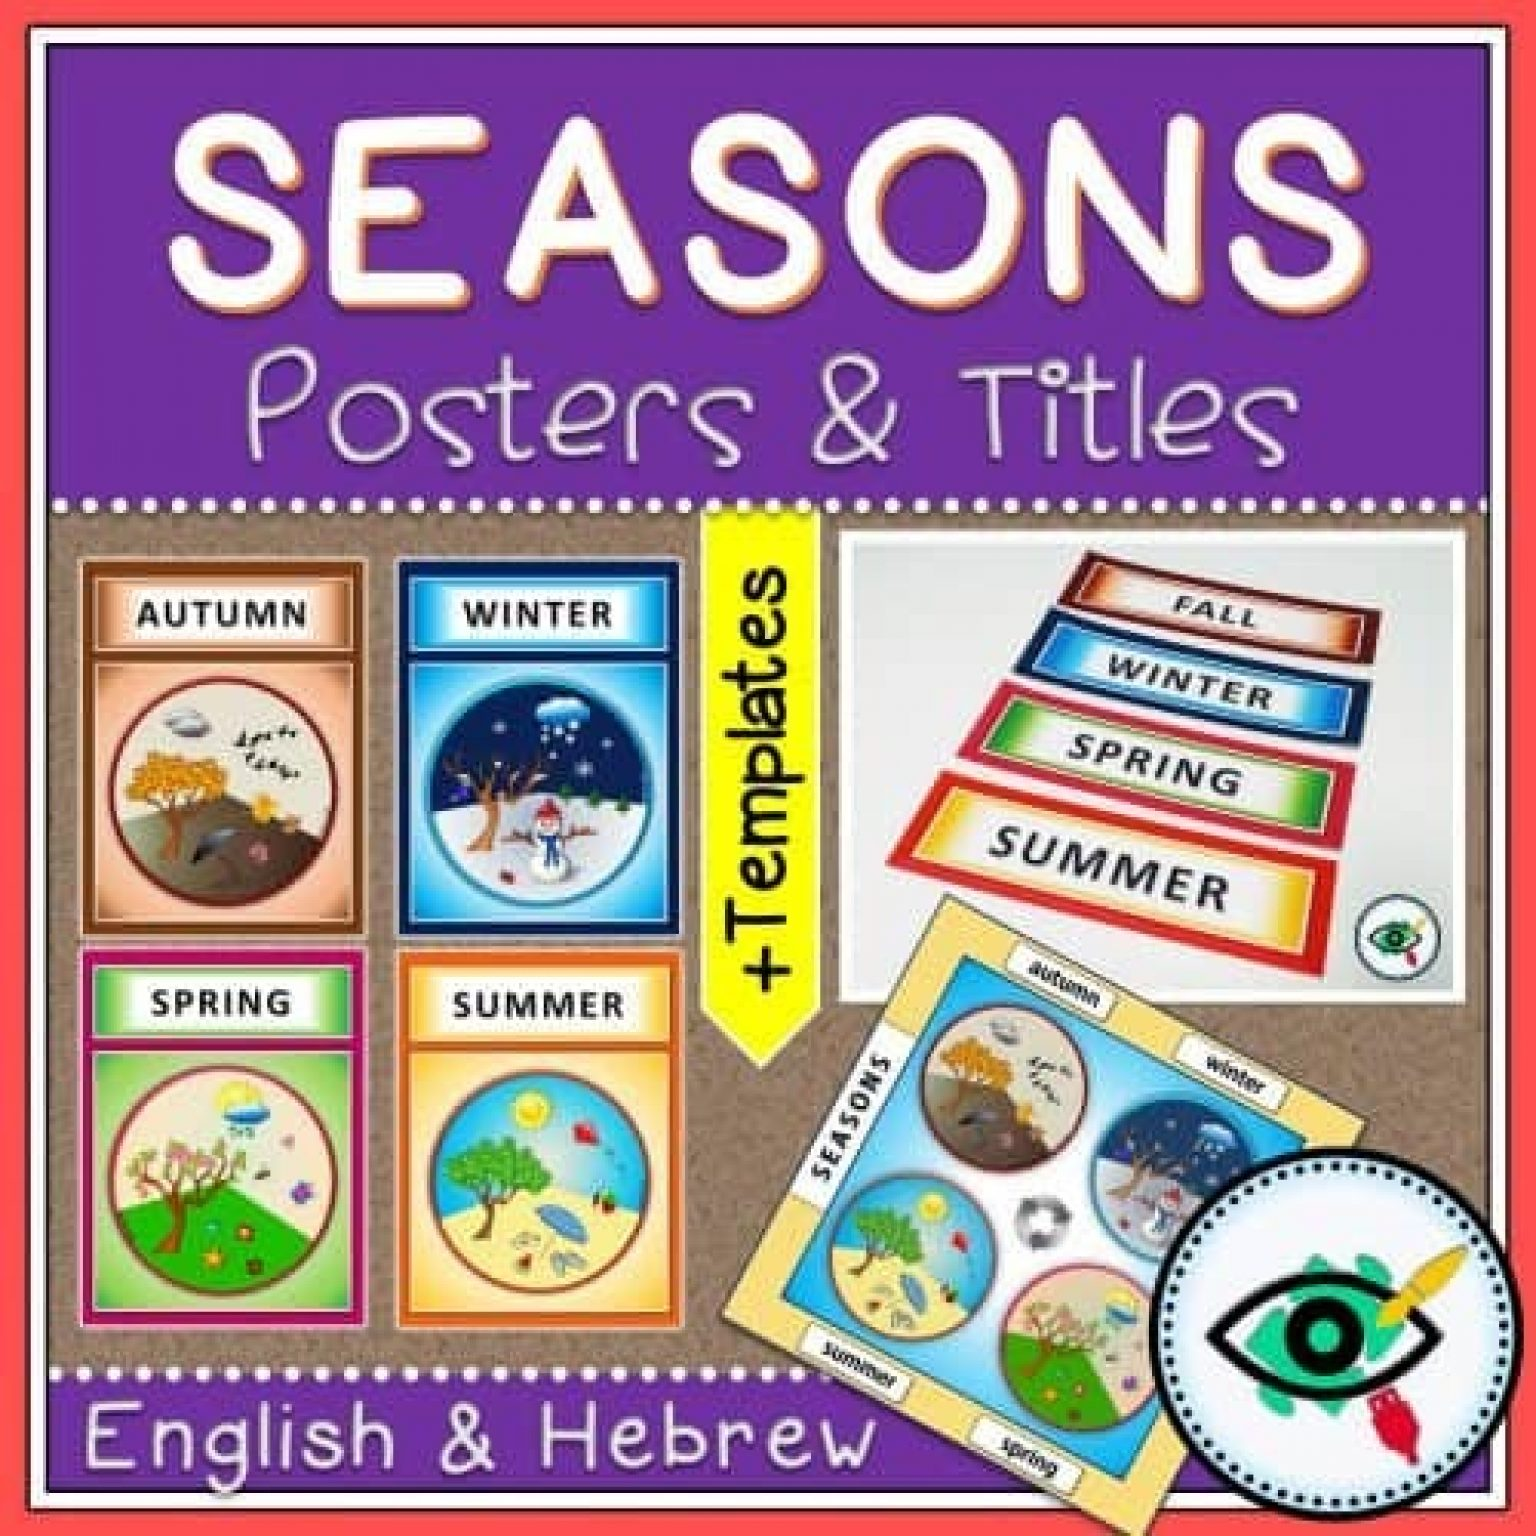 seasons-posters-and-titles-title